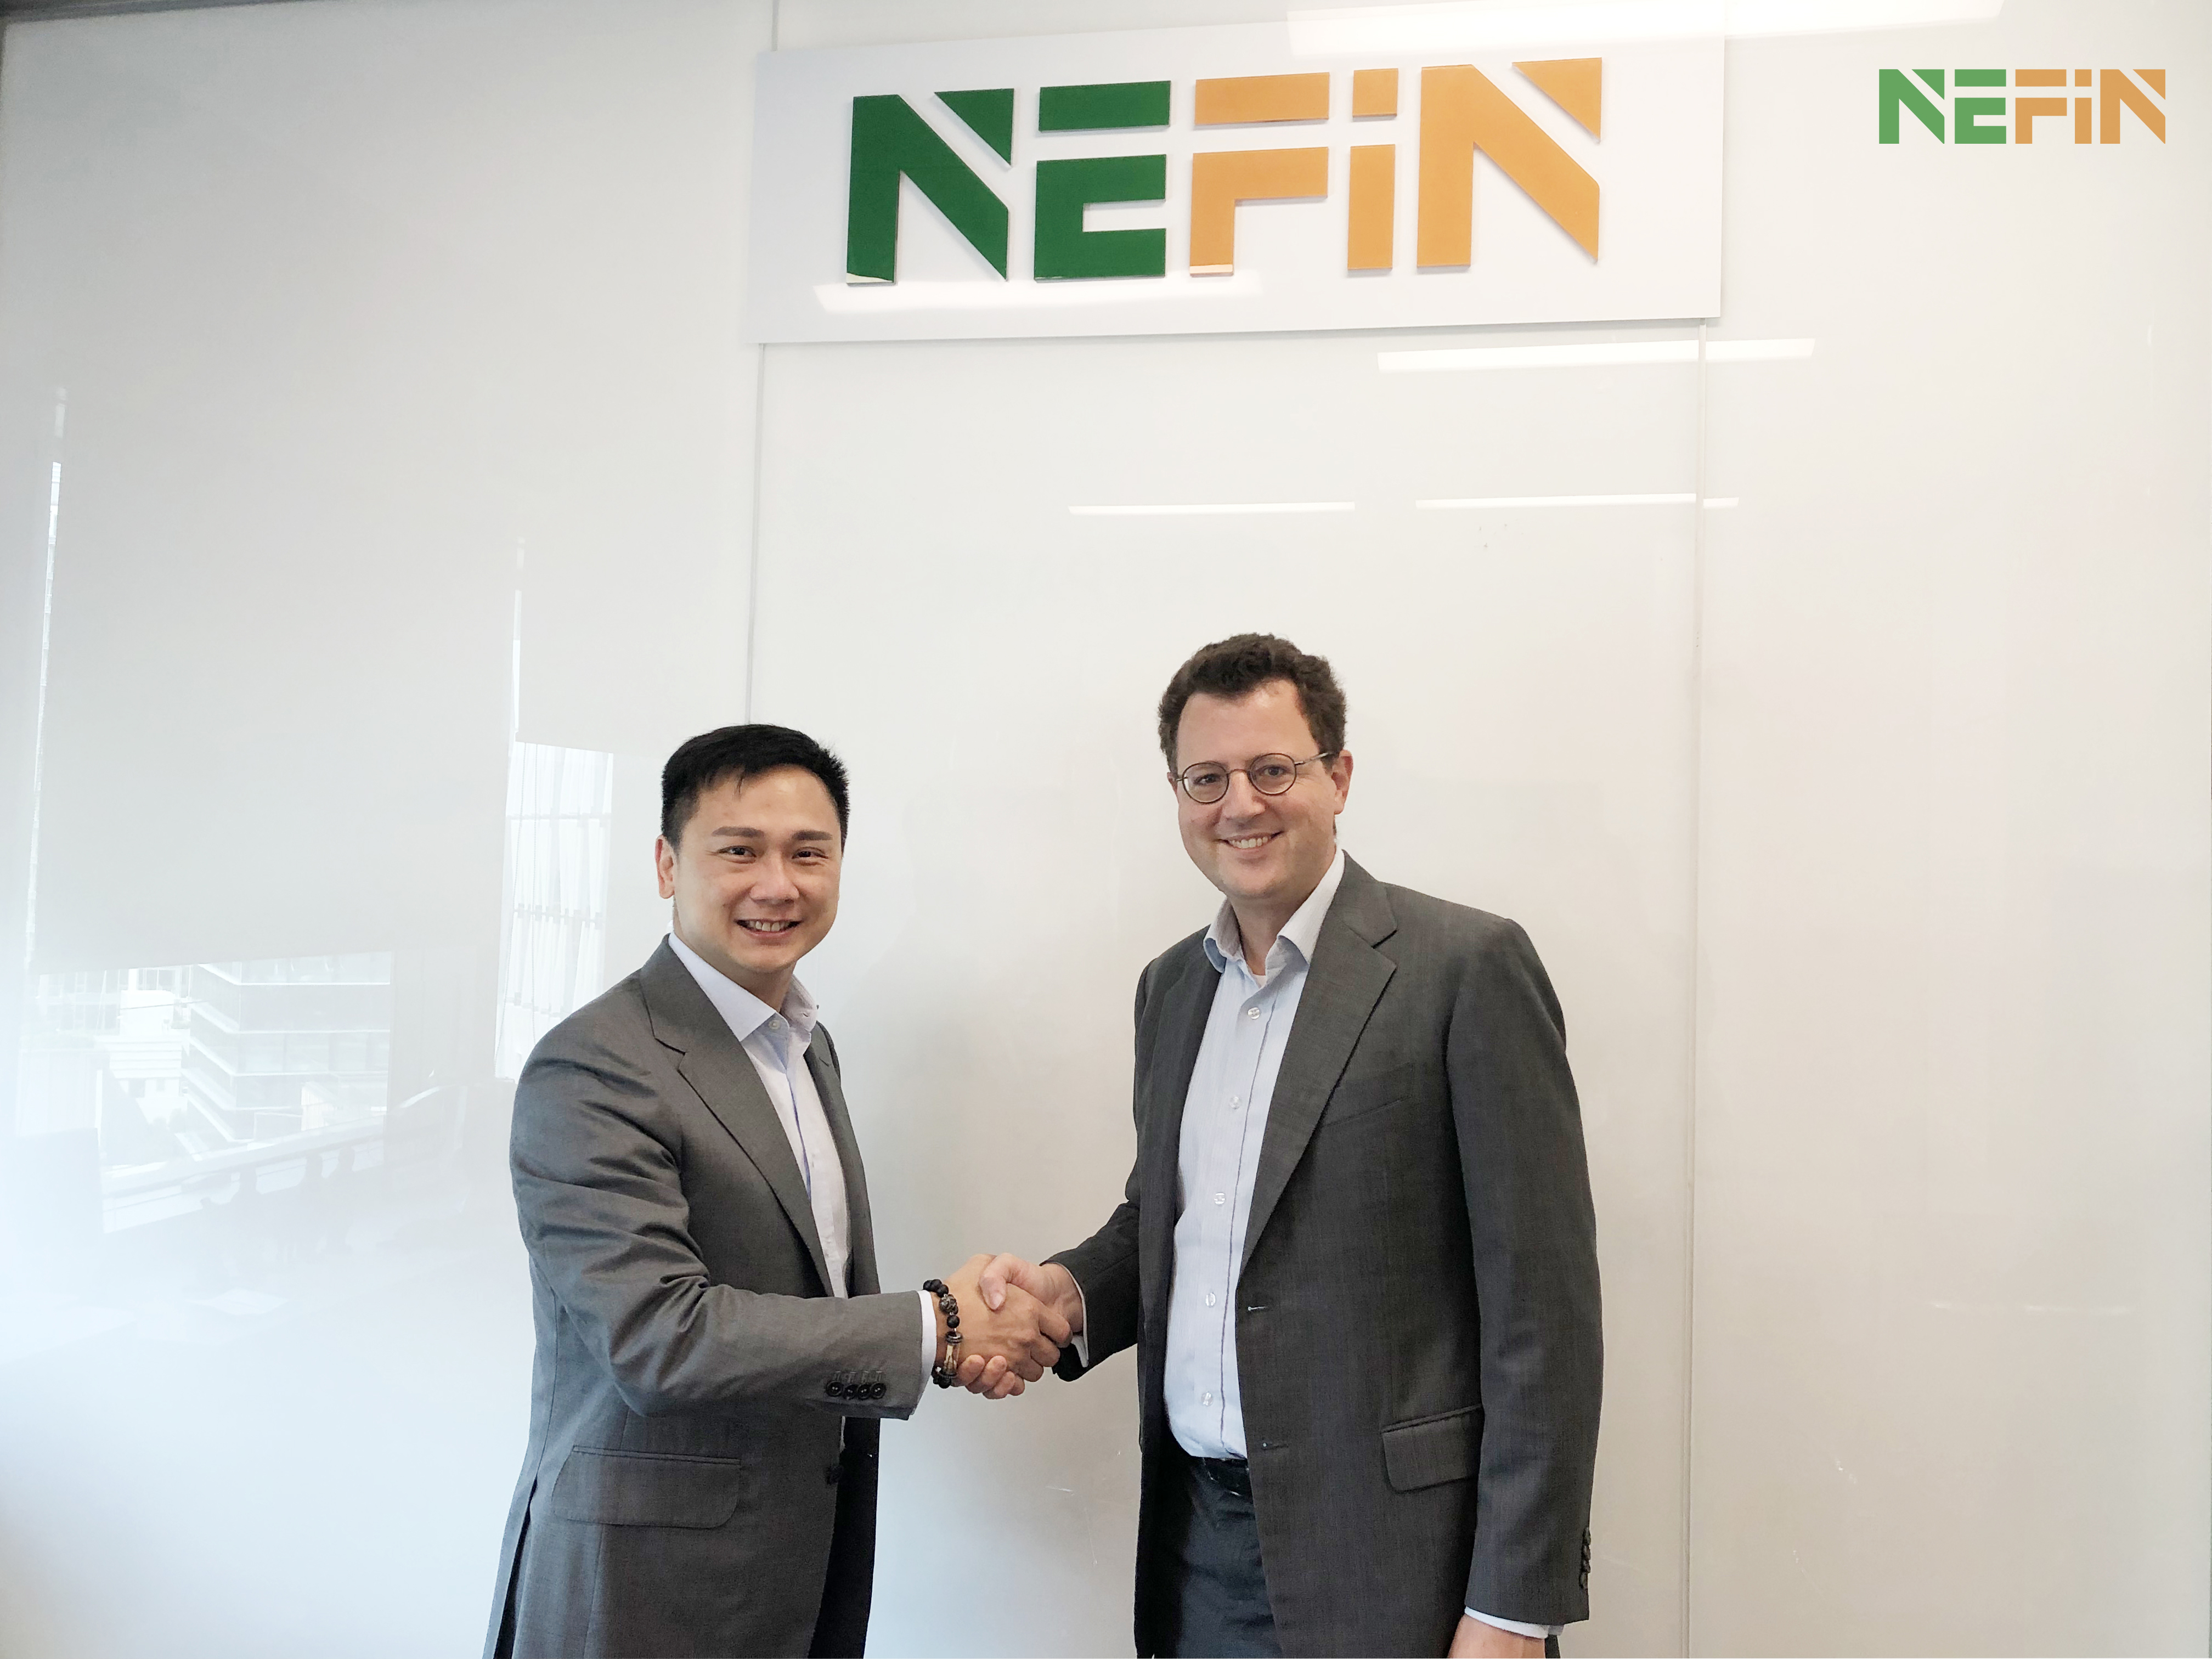 AC Energy and NEFIN Joint Venture to Offer Carbon Neutrality Solutions Across Asia